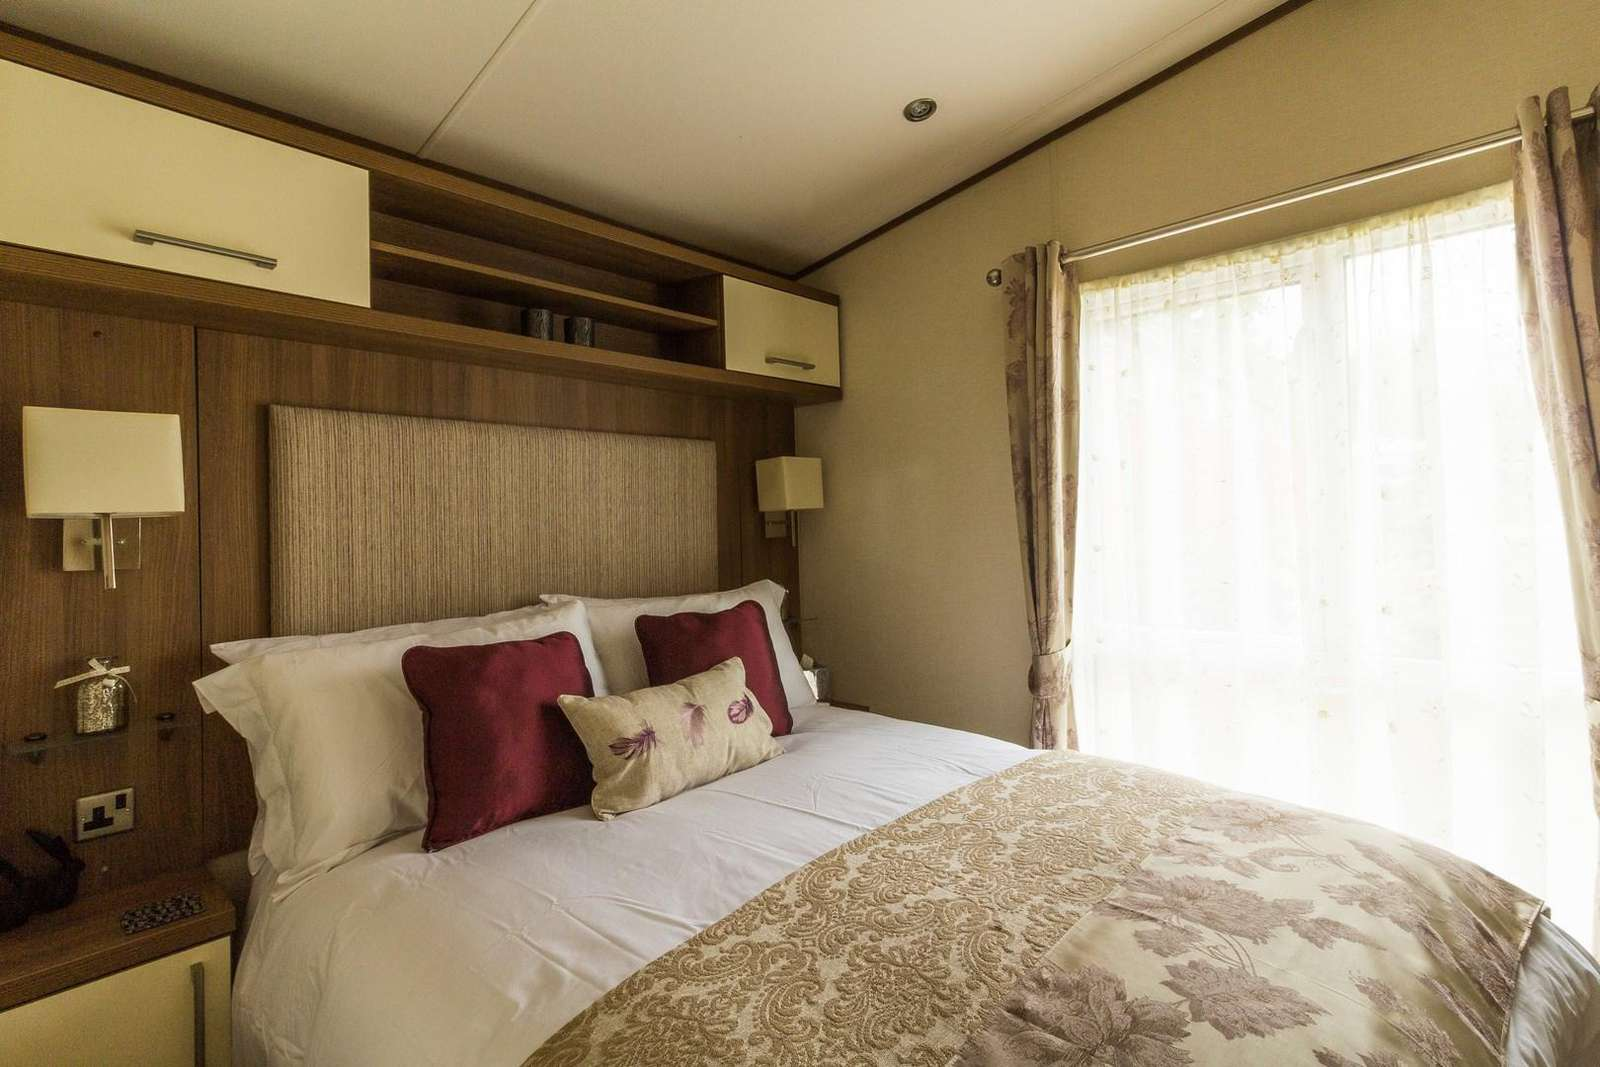 City breaks in Norfolk. Book today a minimum 2 nights stay